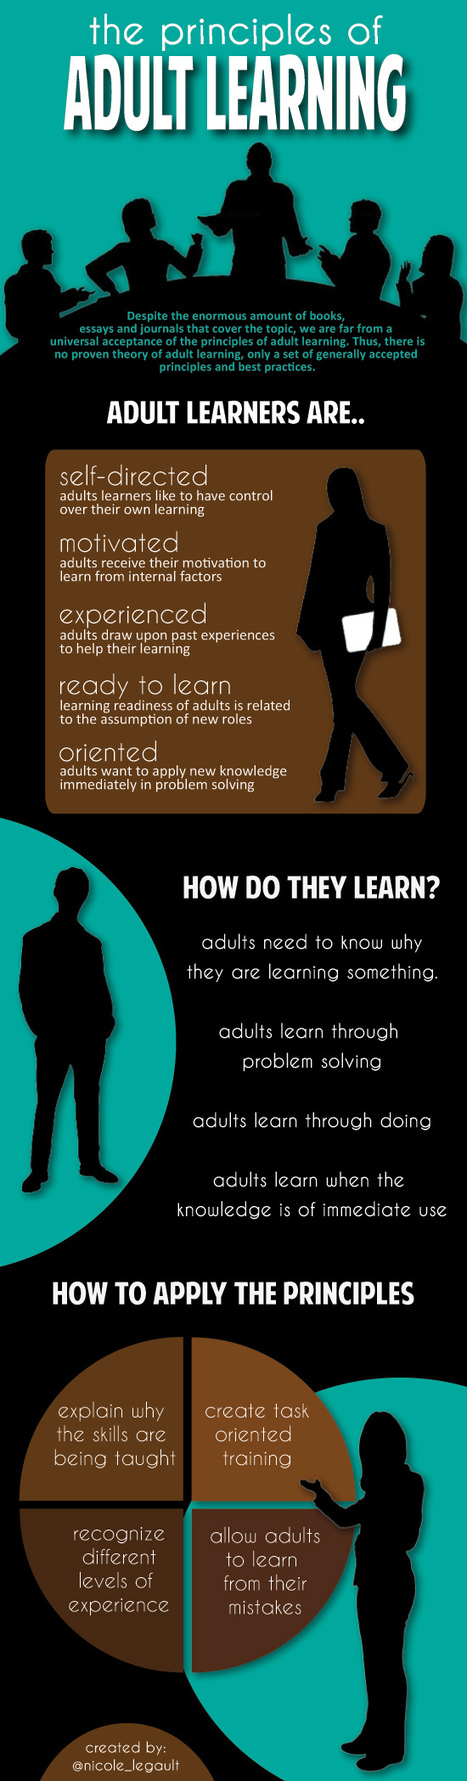 [INFOGRAPHIC] An Overview of the Principles of Adult Learning | social media infographics and typography | Scoop.it